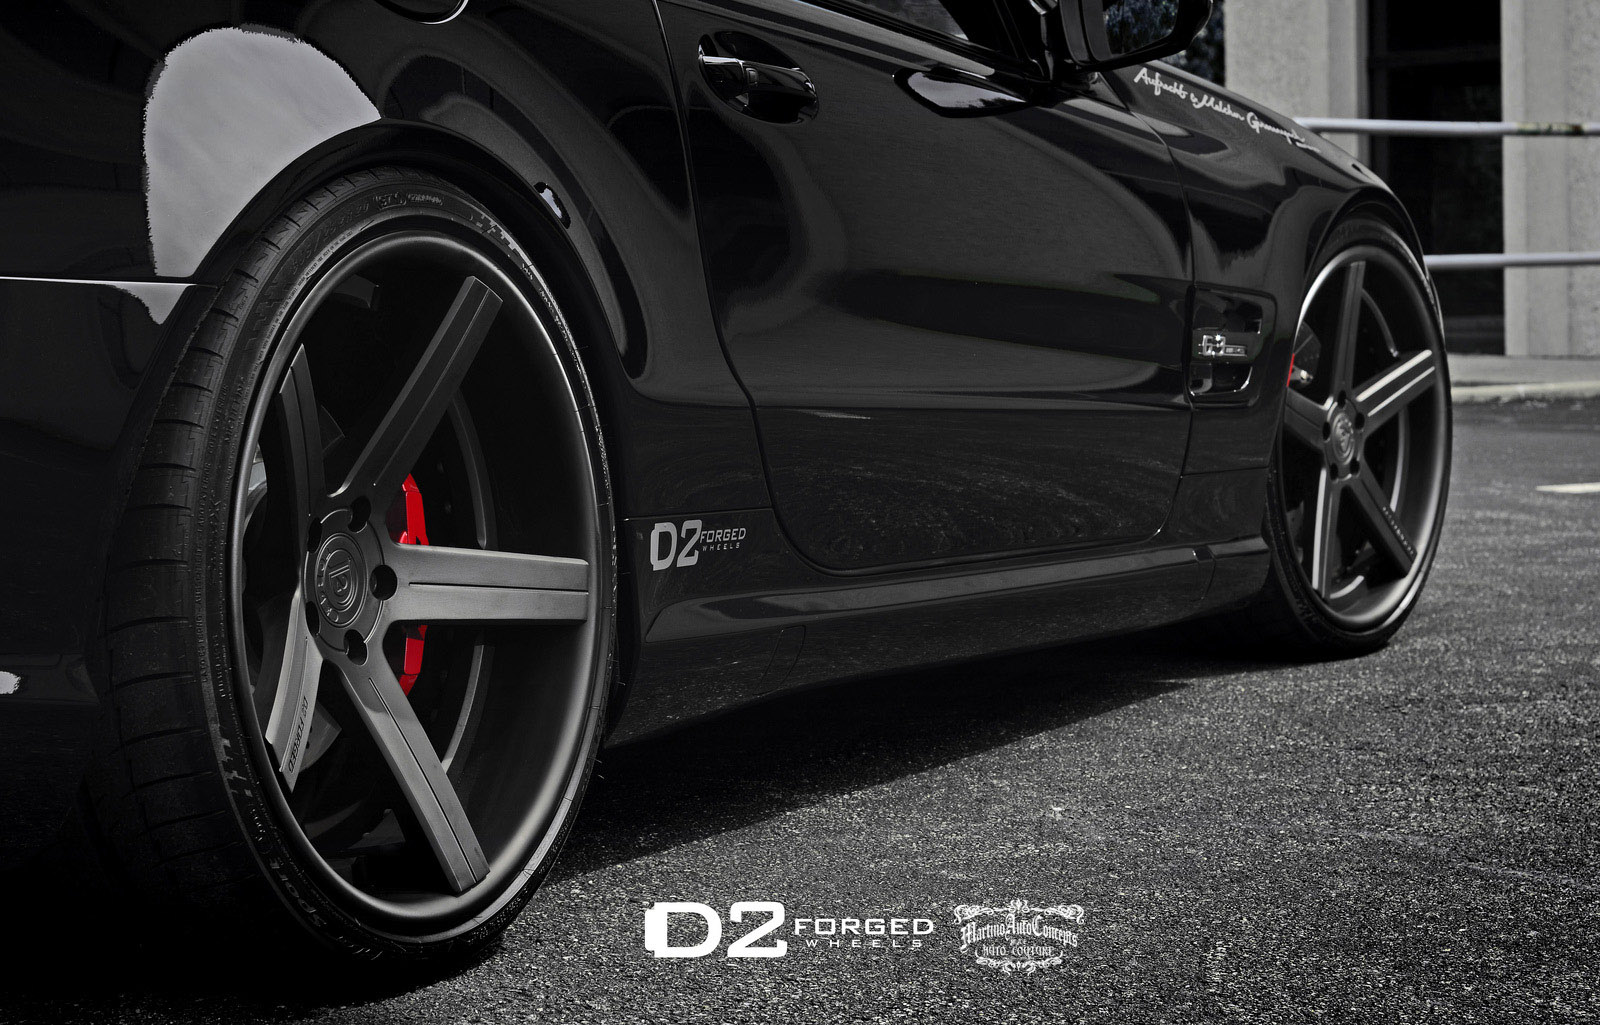 D2forged Gives Mercedes Benz Sl63 Amg New Look